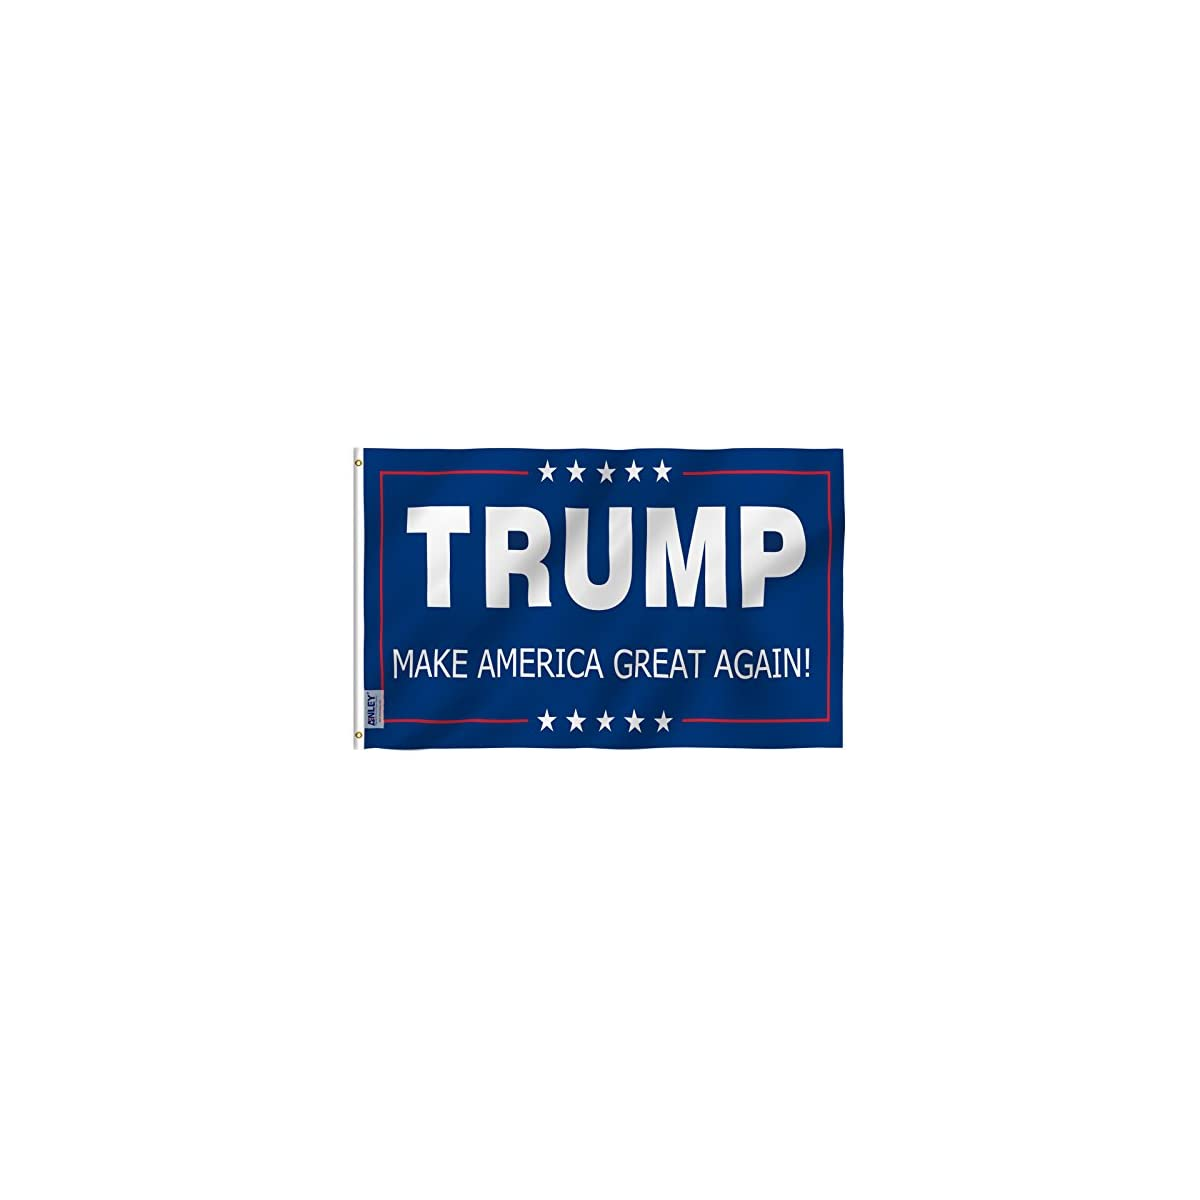 Anley Fly Breeze 3×5 Foot Donald Trump Flag – Vivid Color and UV Fade Resistant – Canvas Header and Double Stitched – The 45th U.S. President Flags Polyester with Brass Grommets 3 X 5 Ft